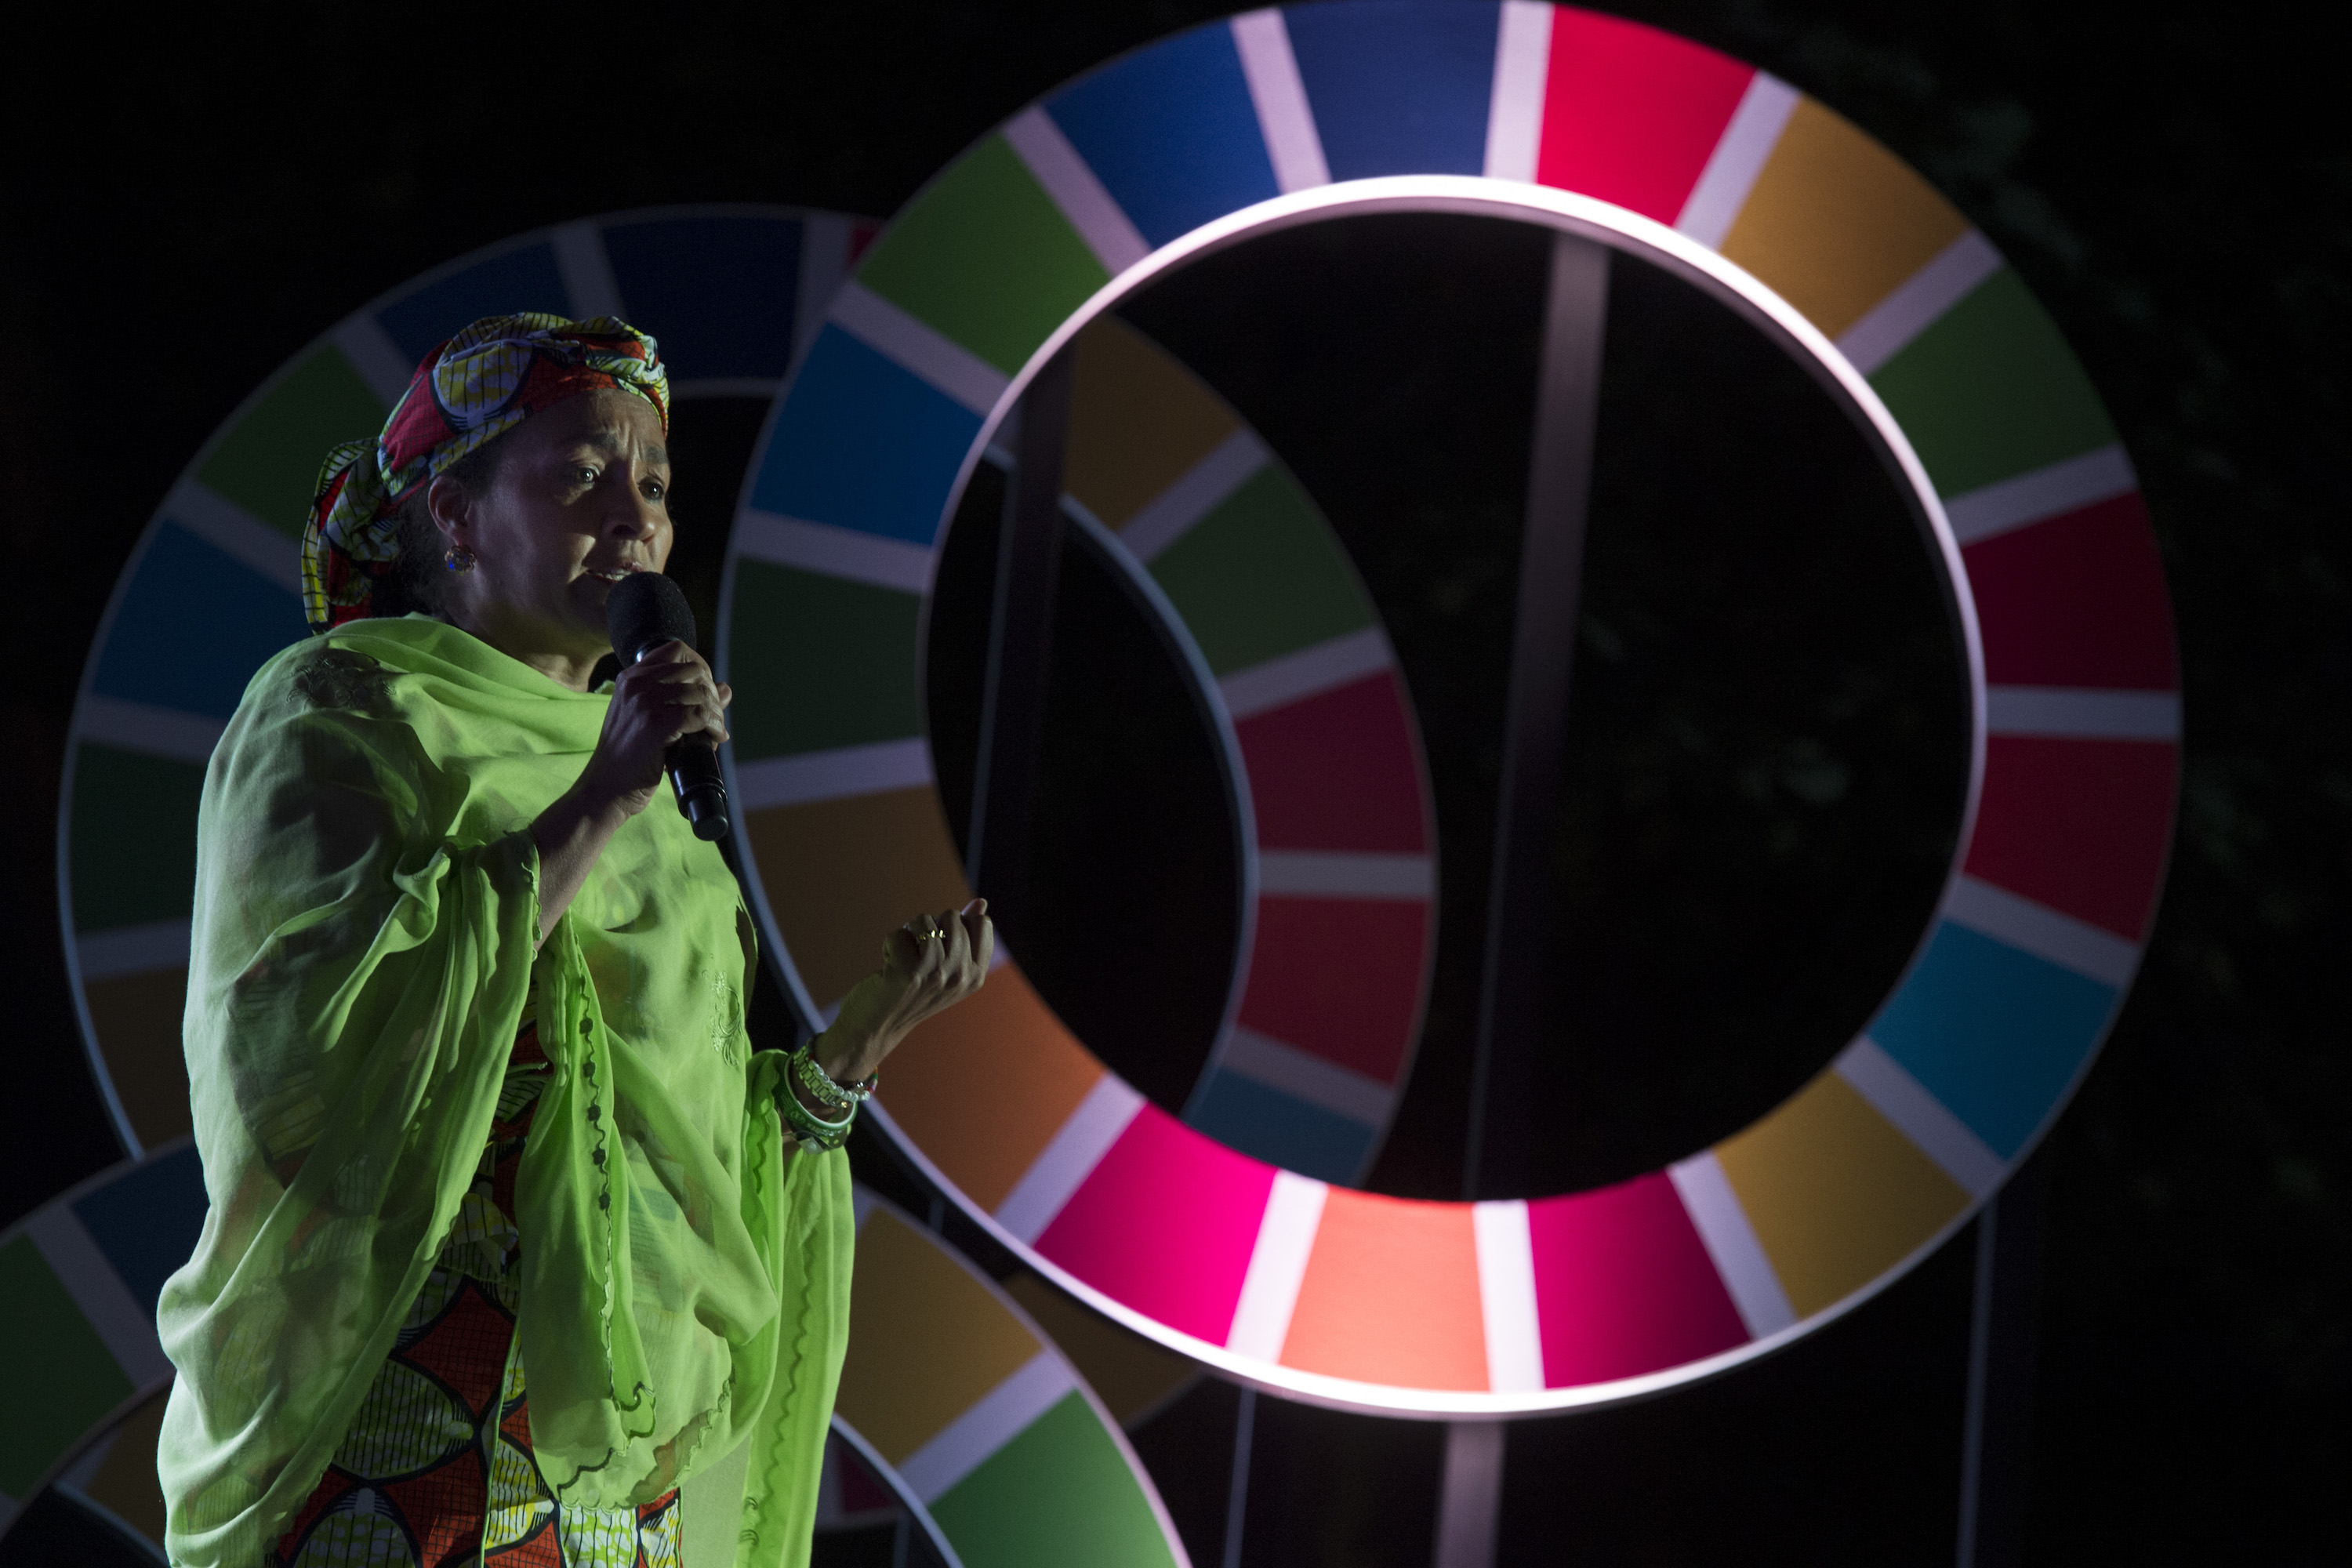 Amina Mohammed, UN Special Advisor on Post-2015 Development Planning, speaks about the Sustainable Development Goals (SDGs) in 2015. Photo by UN Photo/Mark Garten, licensed under (CC BY-NC-ND 2.0).